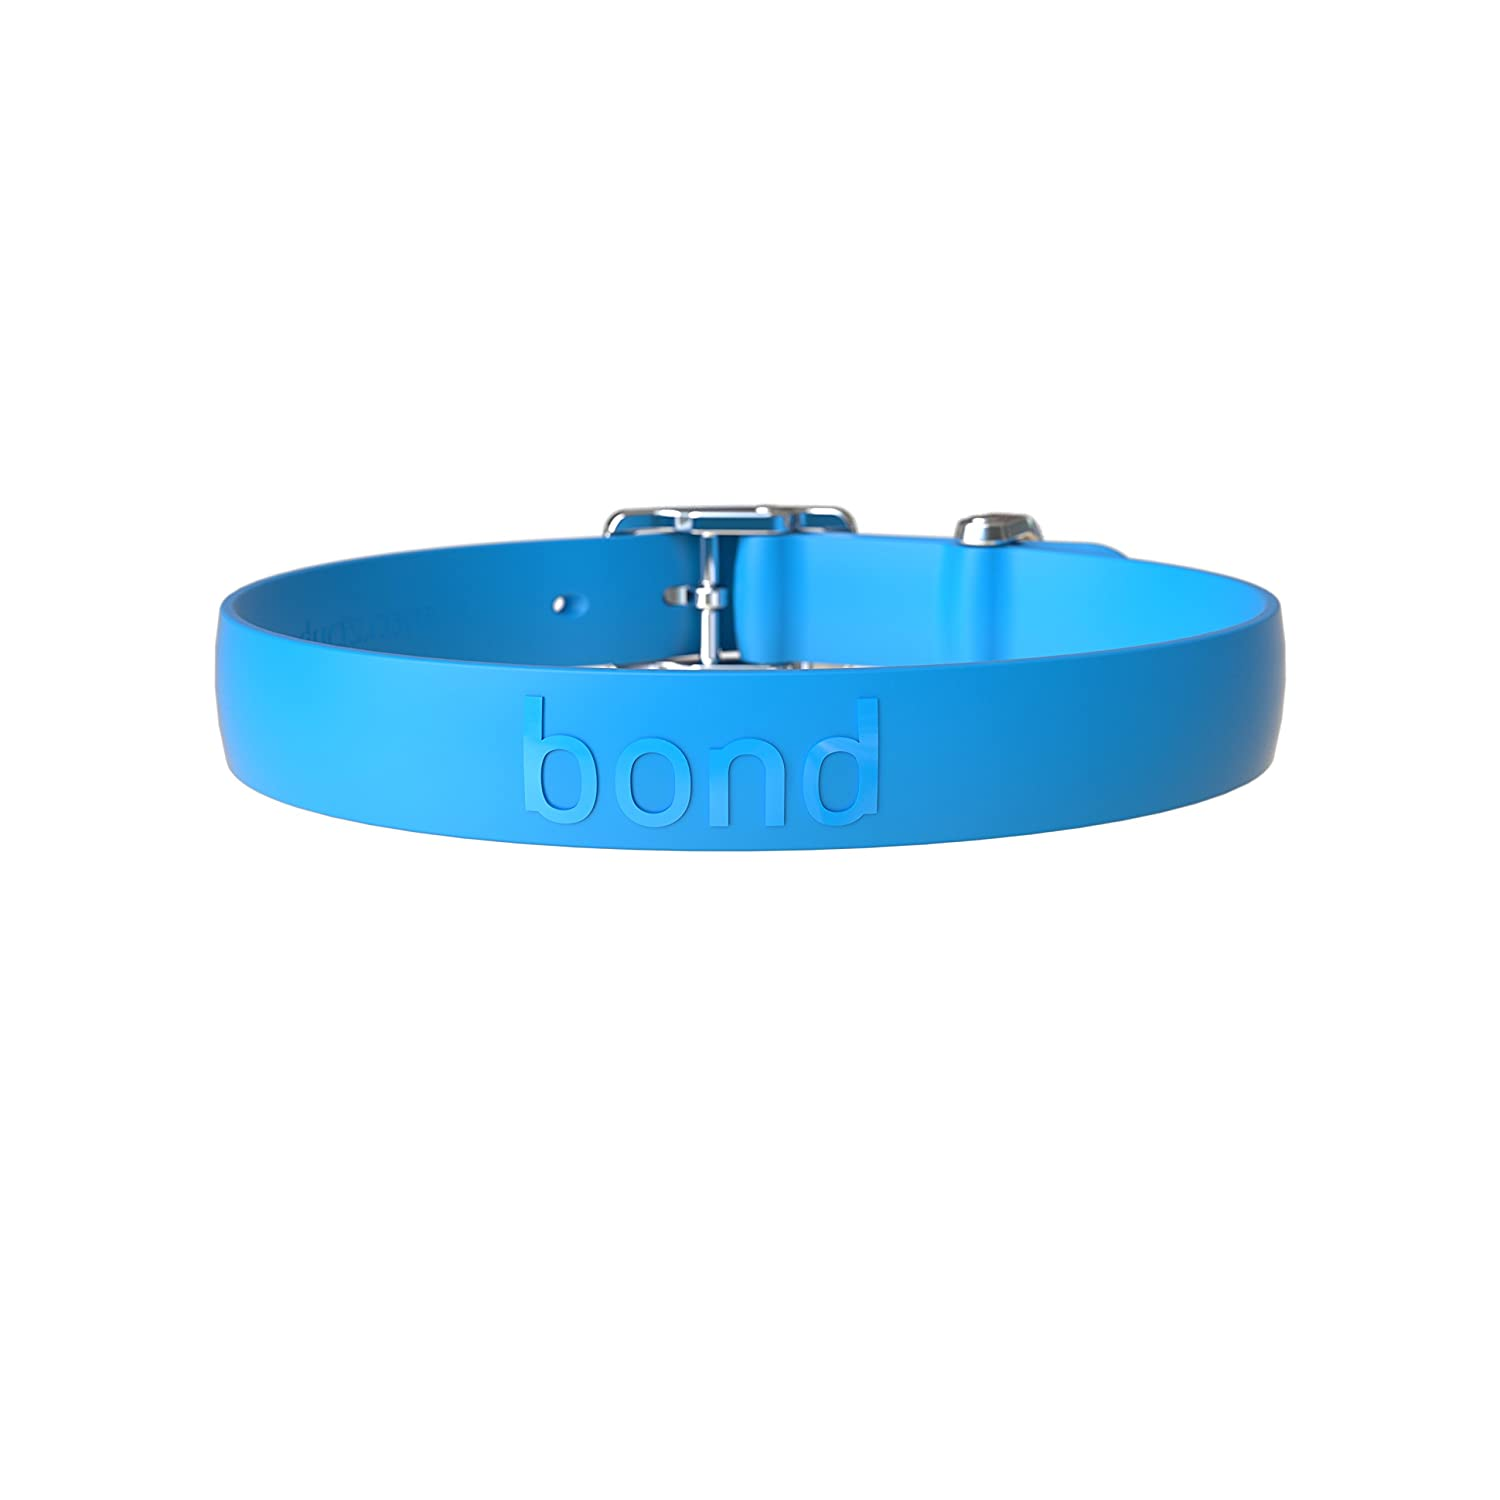 Bond Pet Products High Performance Dog Collar   Waterproof & Durable Collars for Dogs (Large, blueeberry bluee)